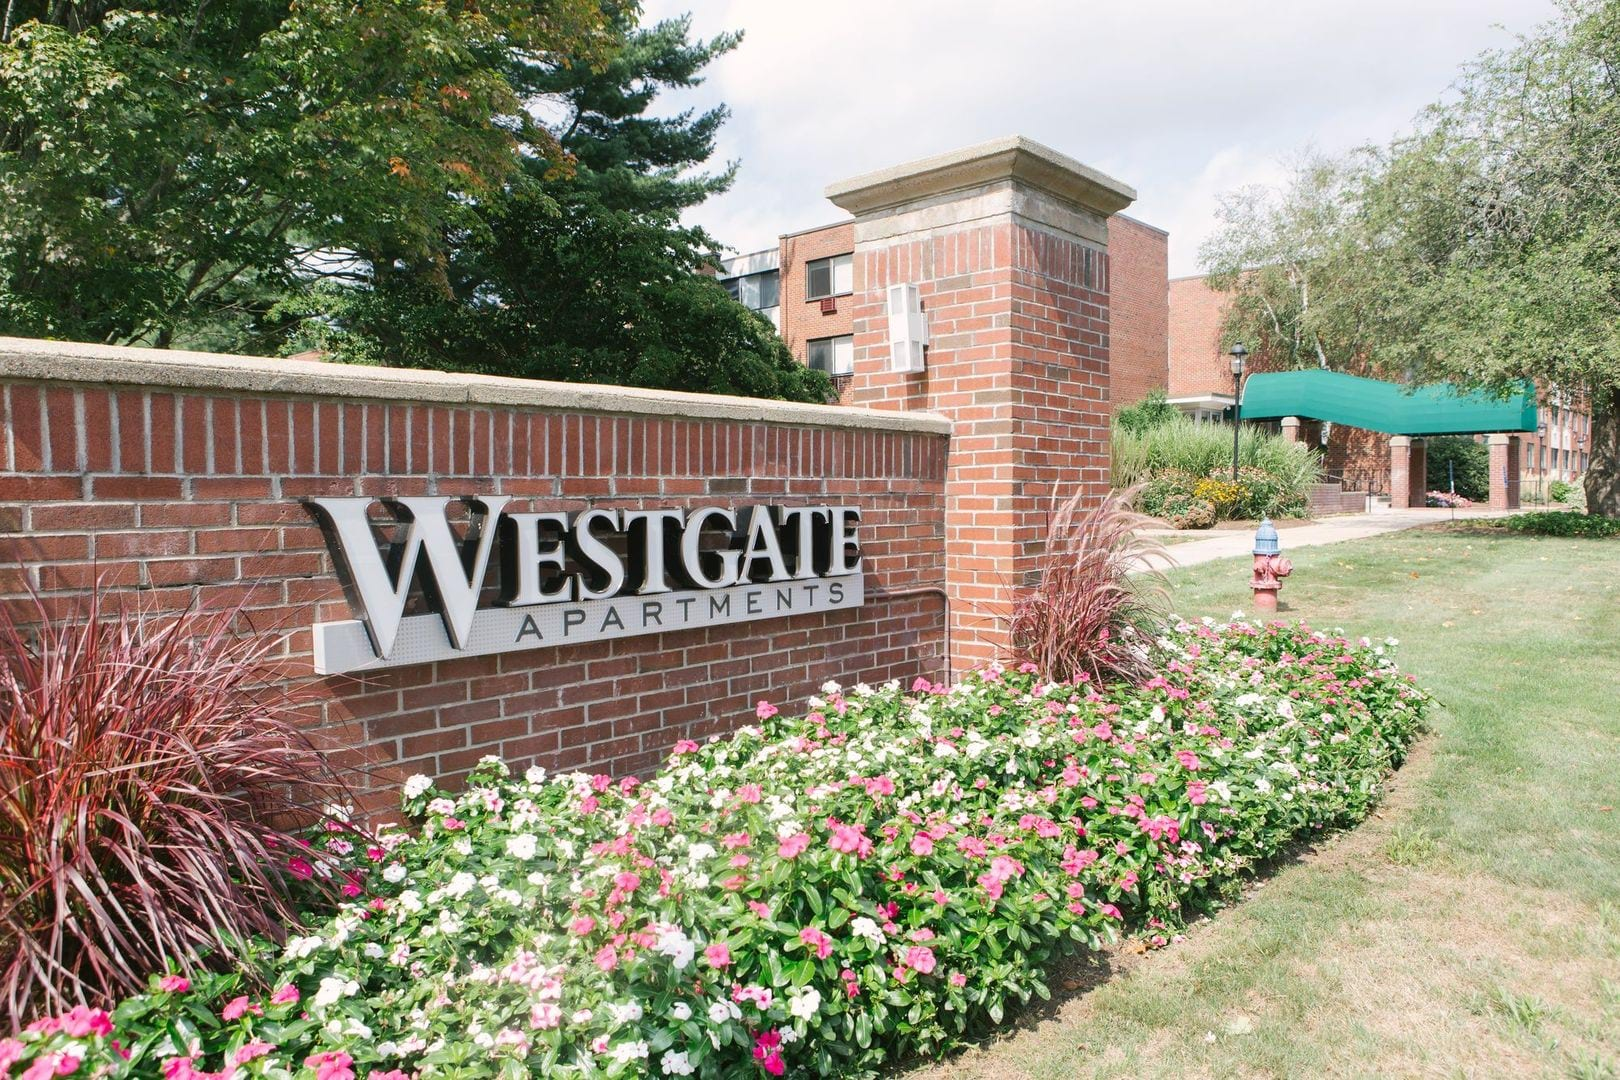 Westgate Apartments in West Hartford, CT | Photos